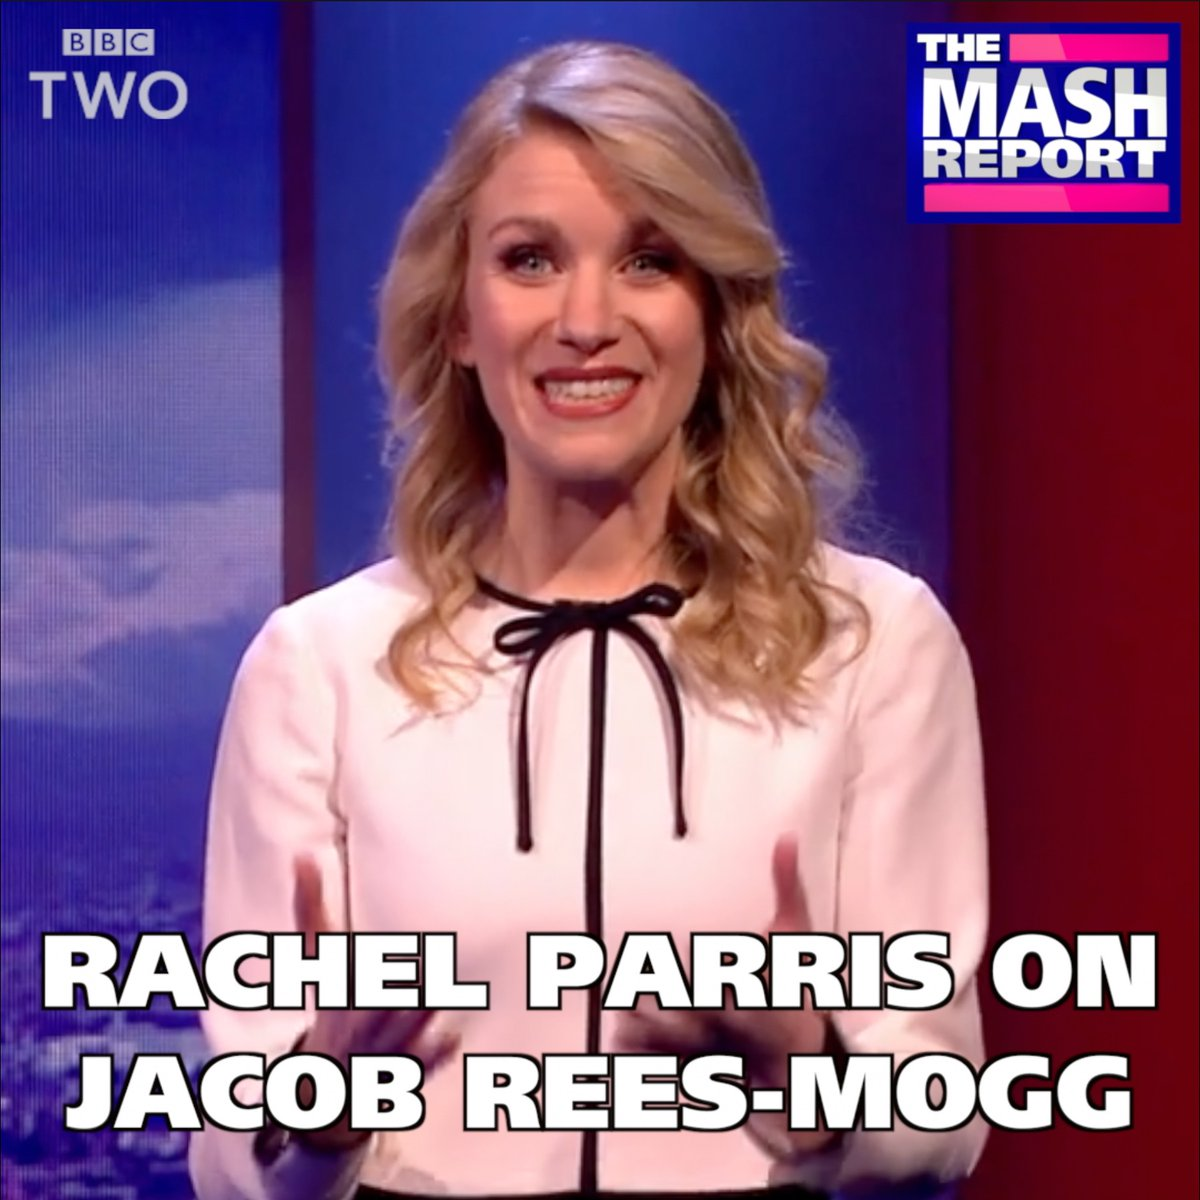 RT Is that quirky chap Jacob Rees-Mogg as much fun as he seems? @RachelParris investigates... 🤔 #TheMashReport  - embedded image